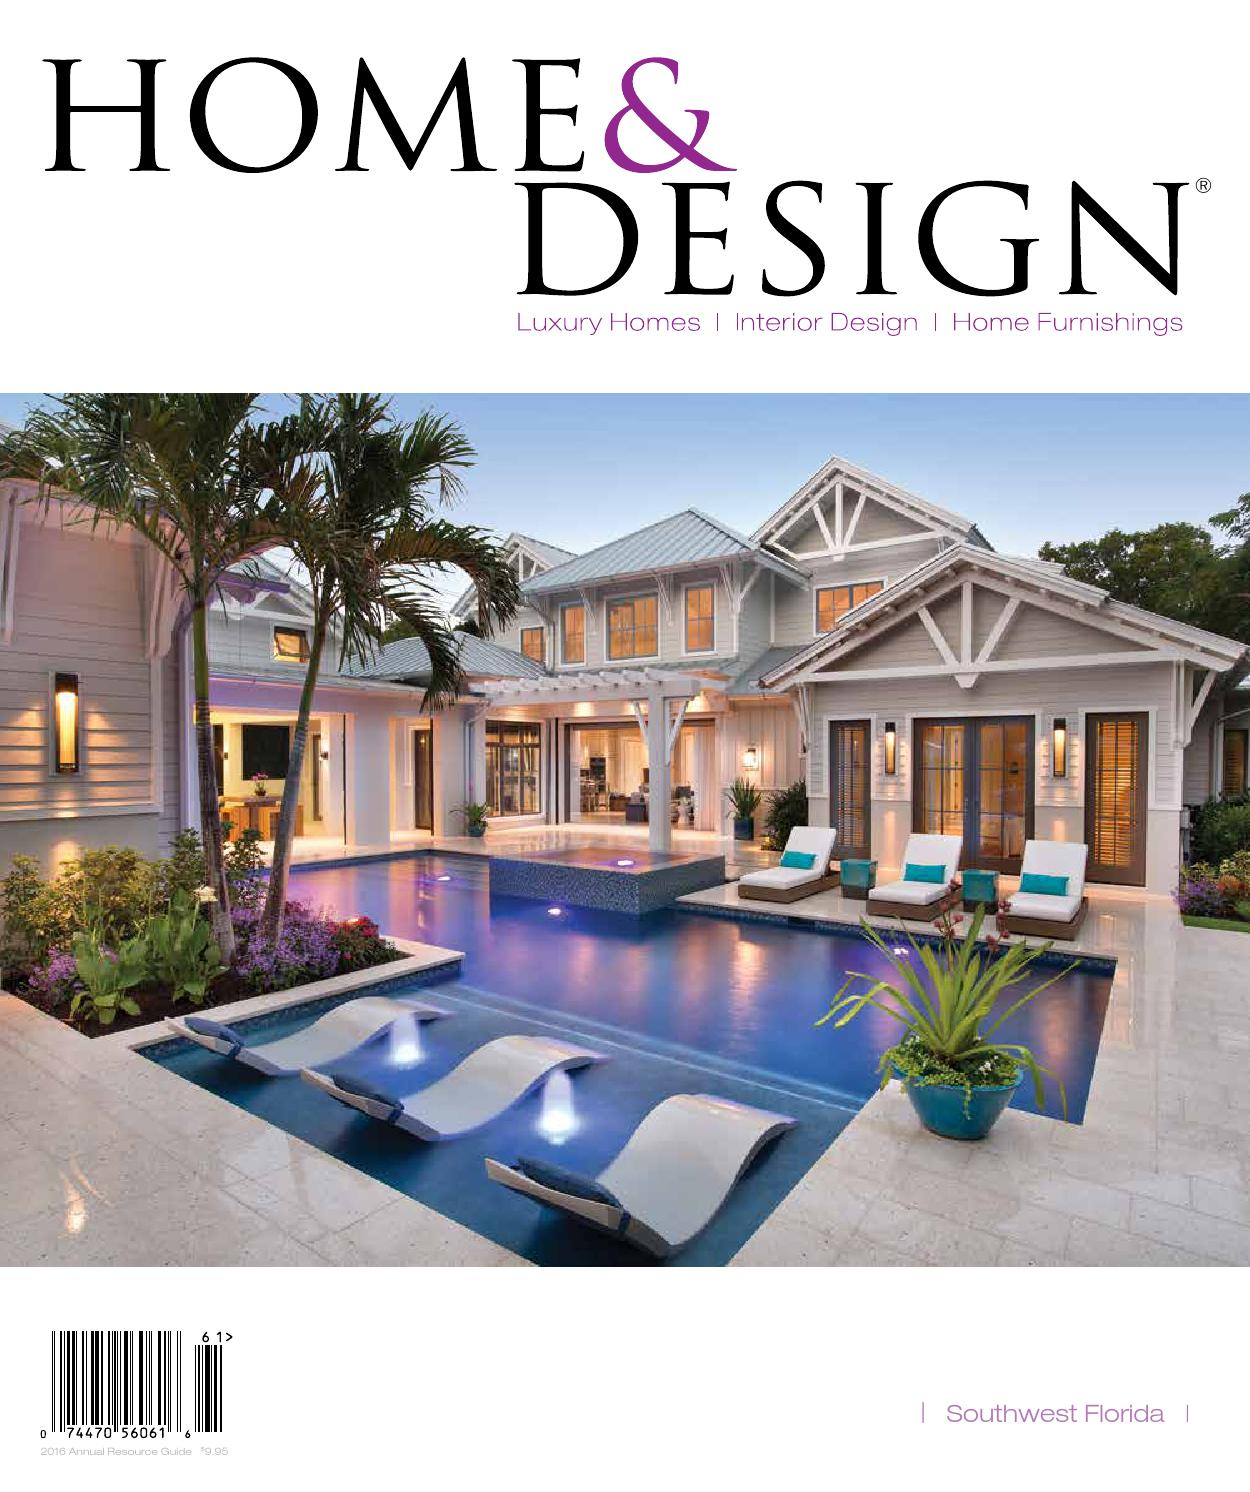 Home design magazine annual resource guide 2016 for Hotel design naples